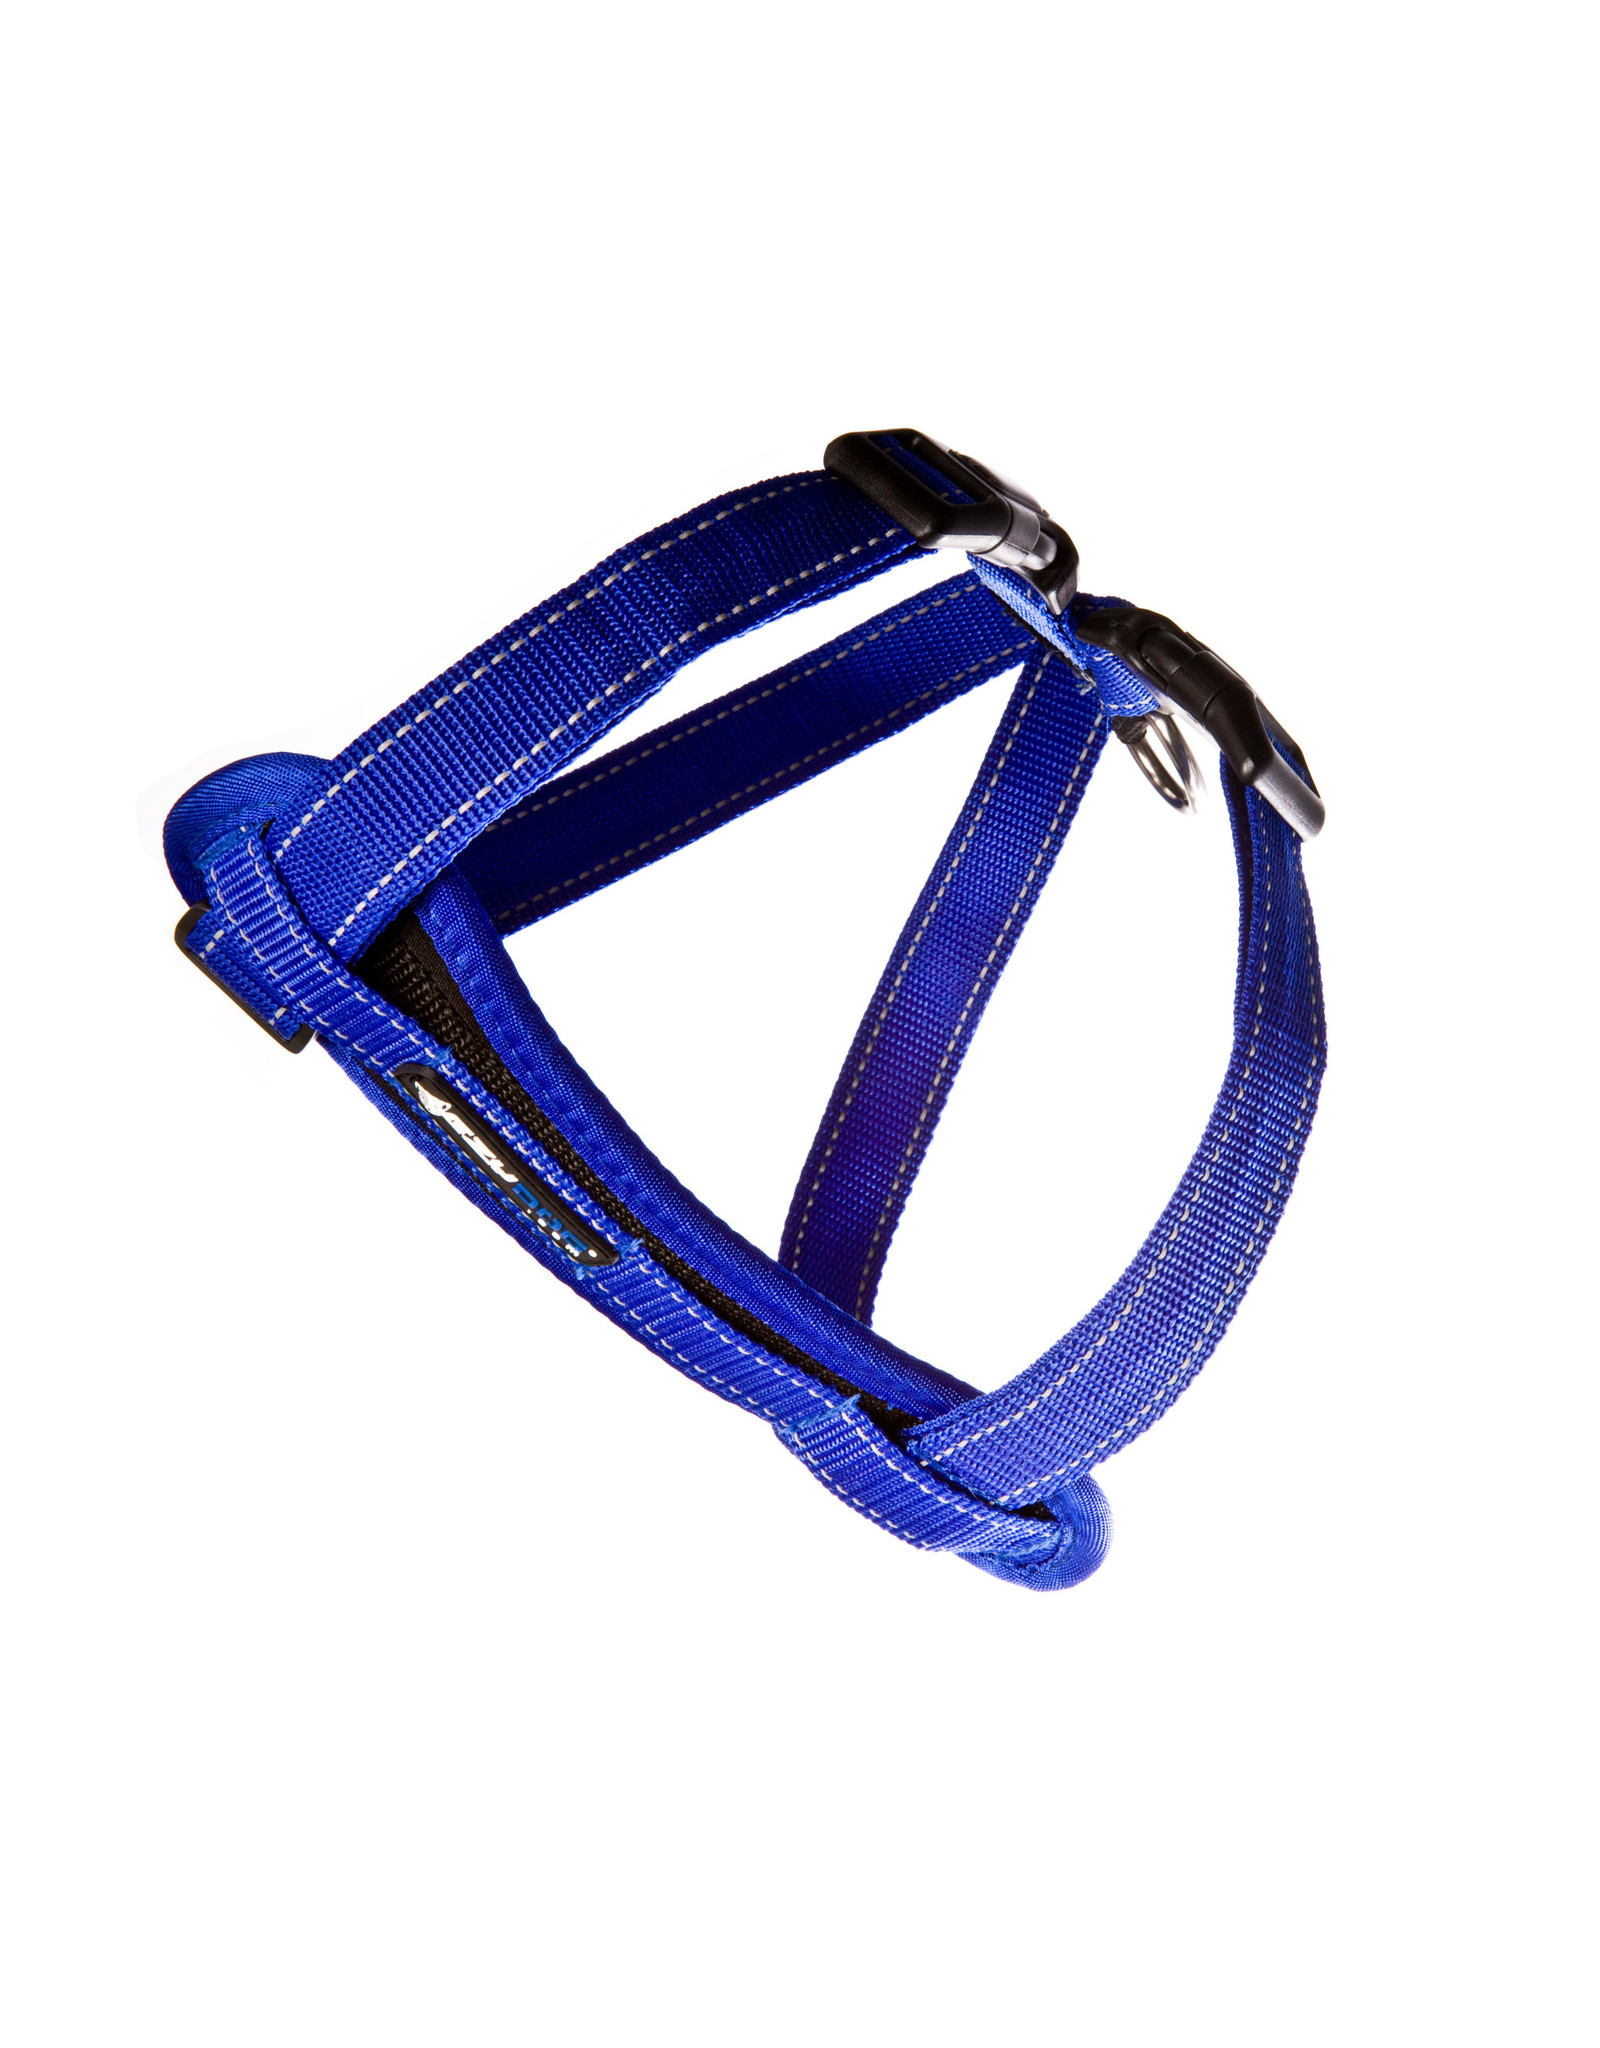 EzyDog Chest Plate Dog Harness with Seat Belt Loop, Blue